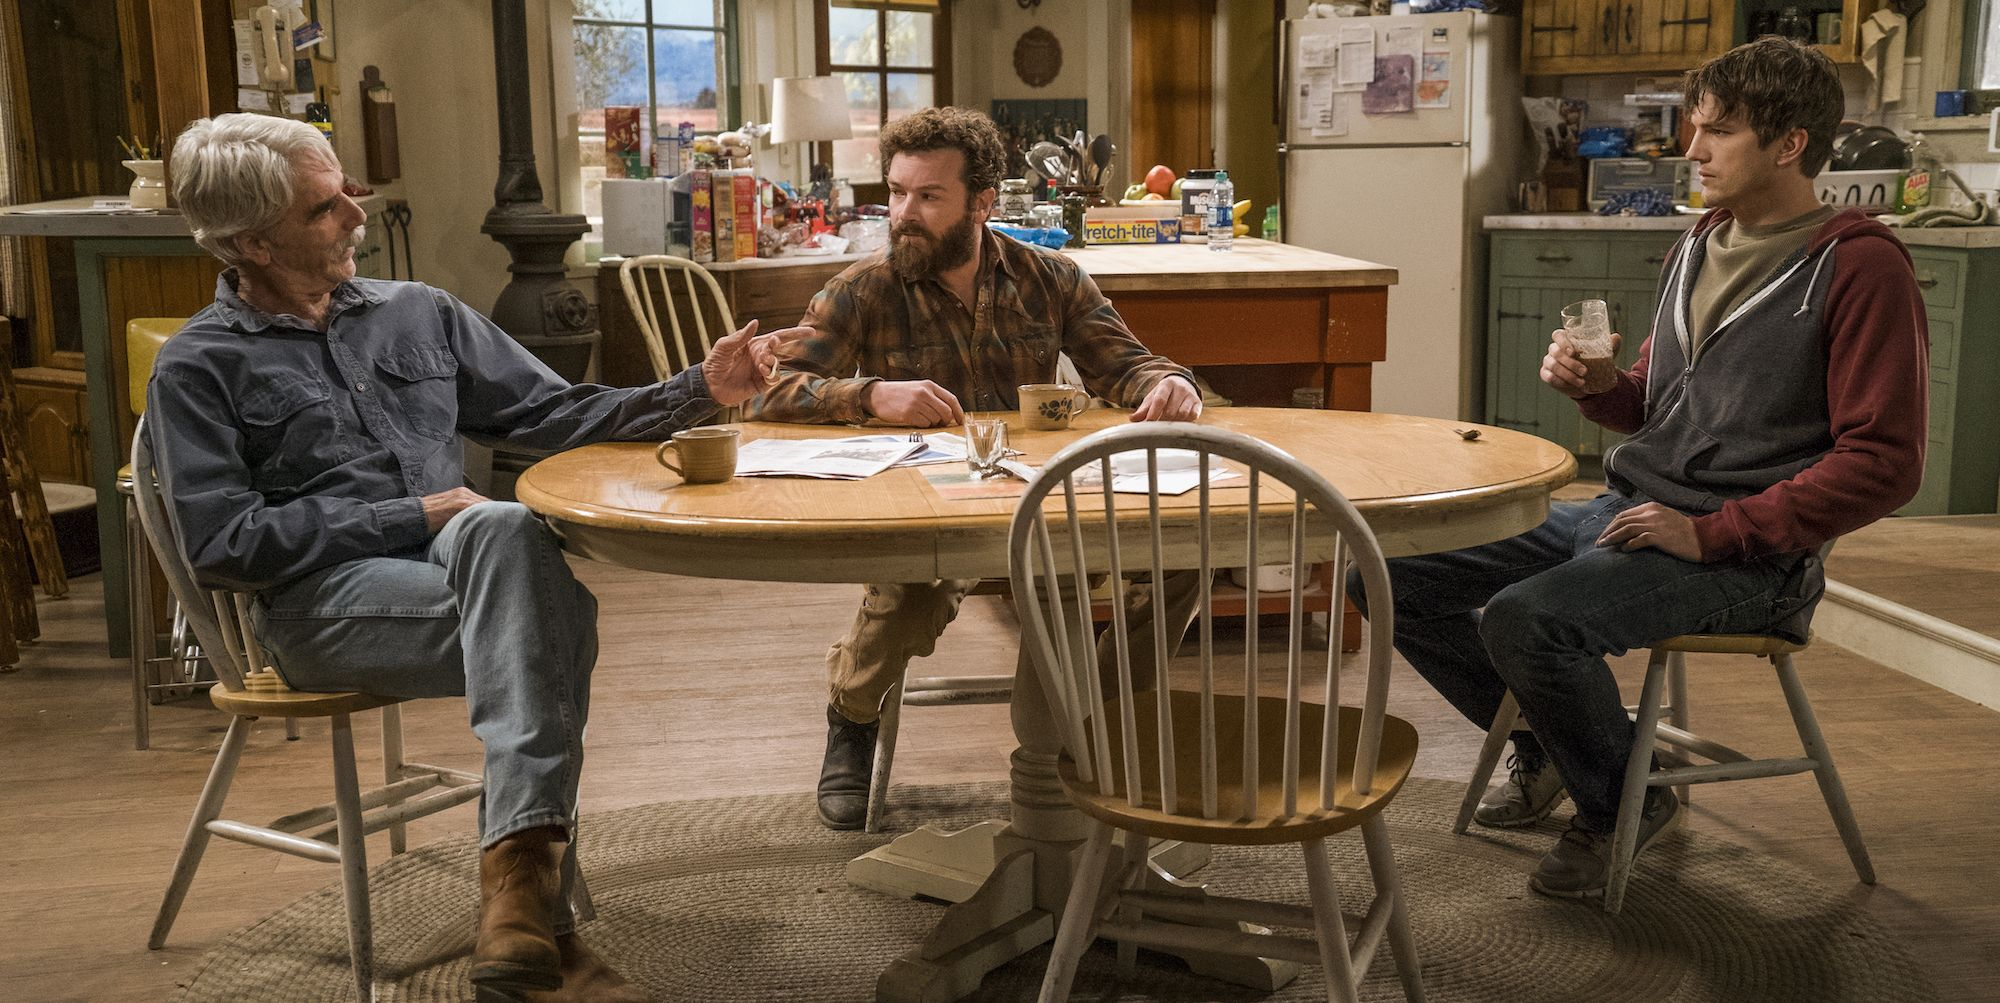 Following Allegations, Netflix Wrote Danny Masterson Out of 'The Ranch' With a Mysterious Death